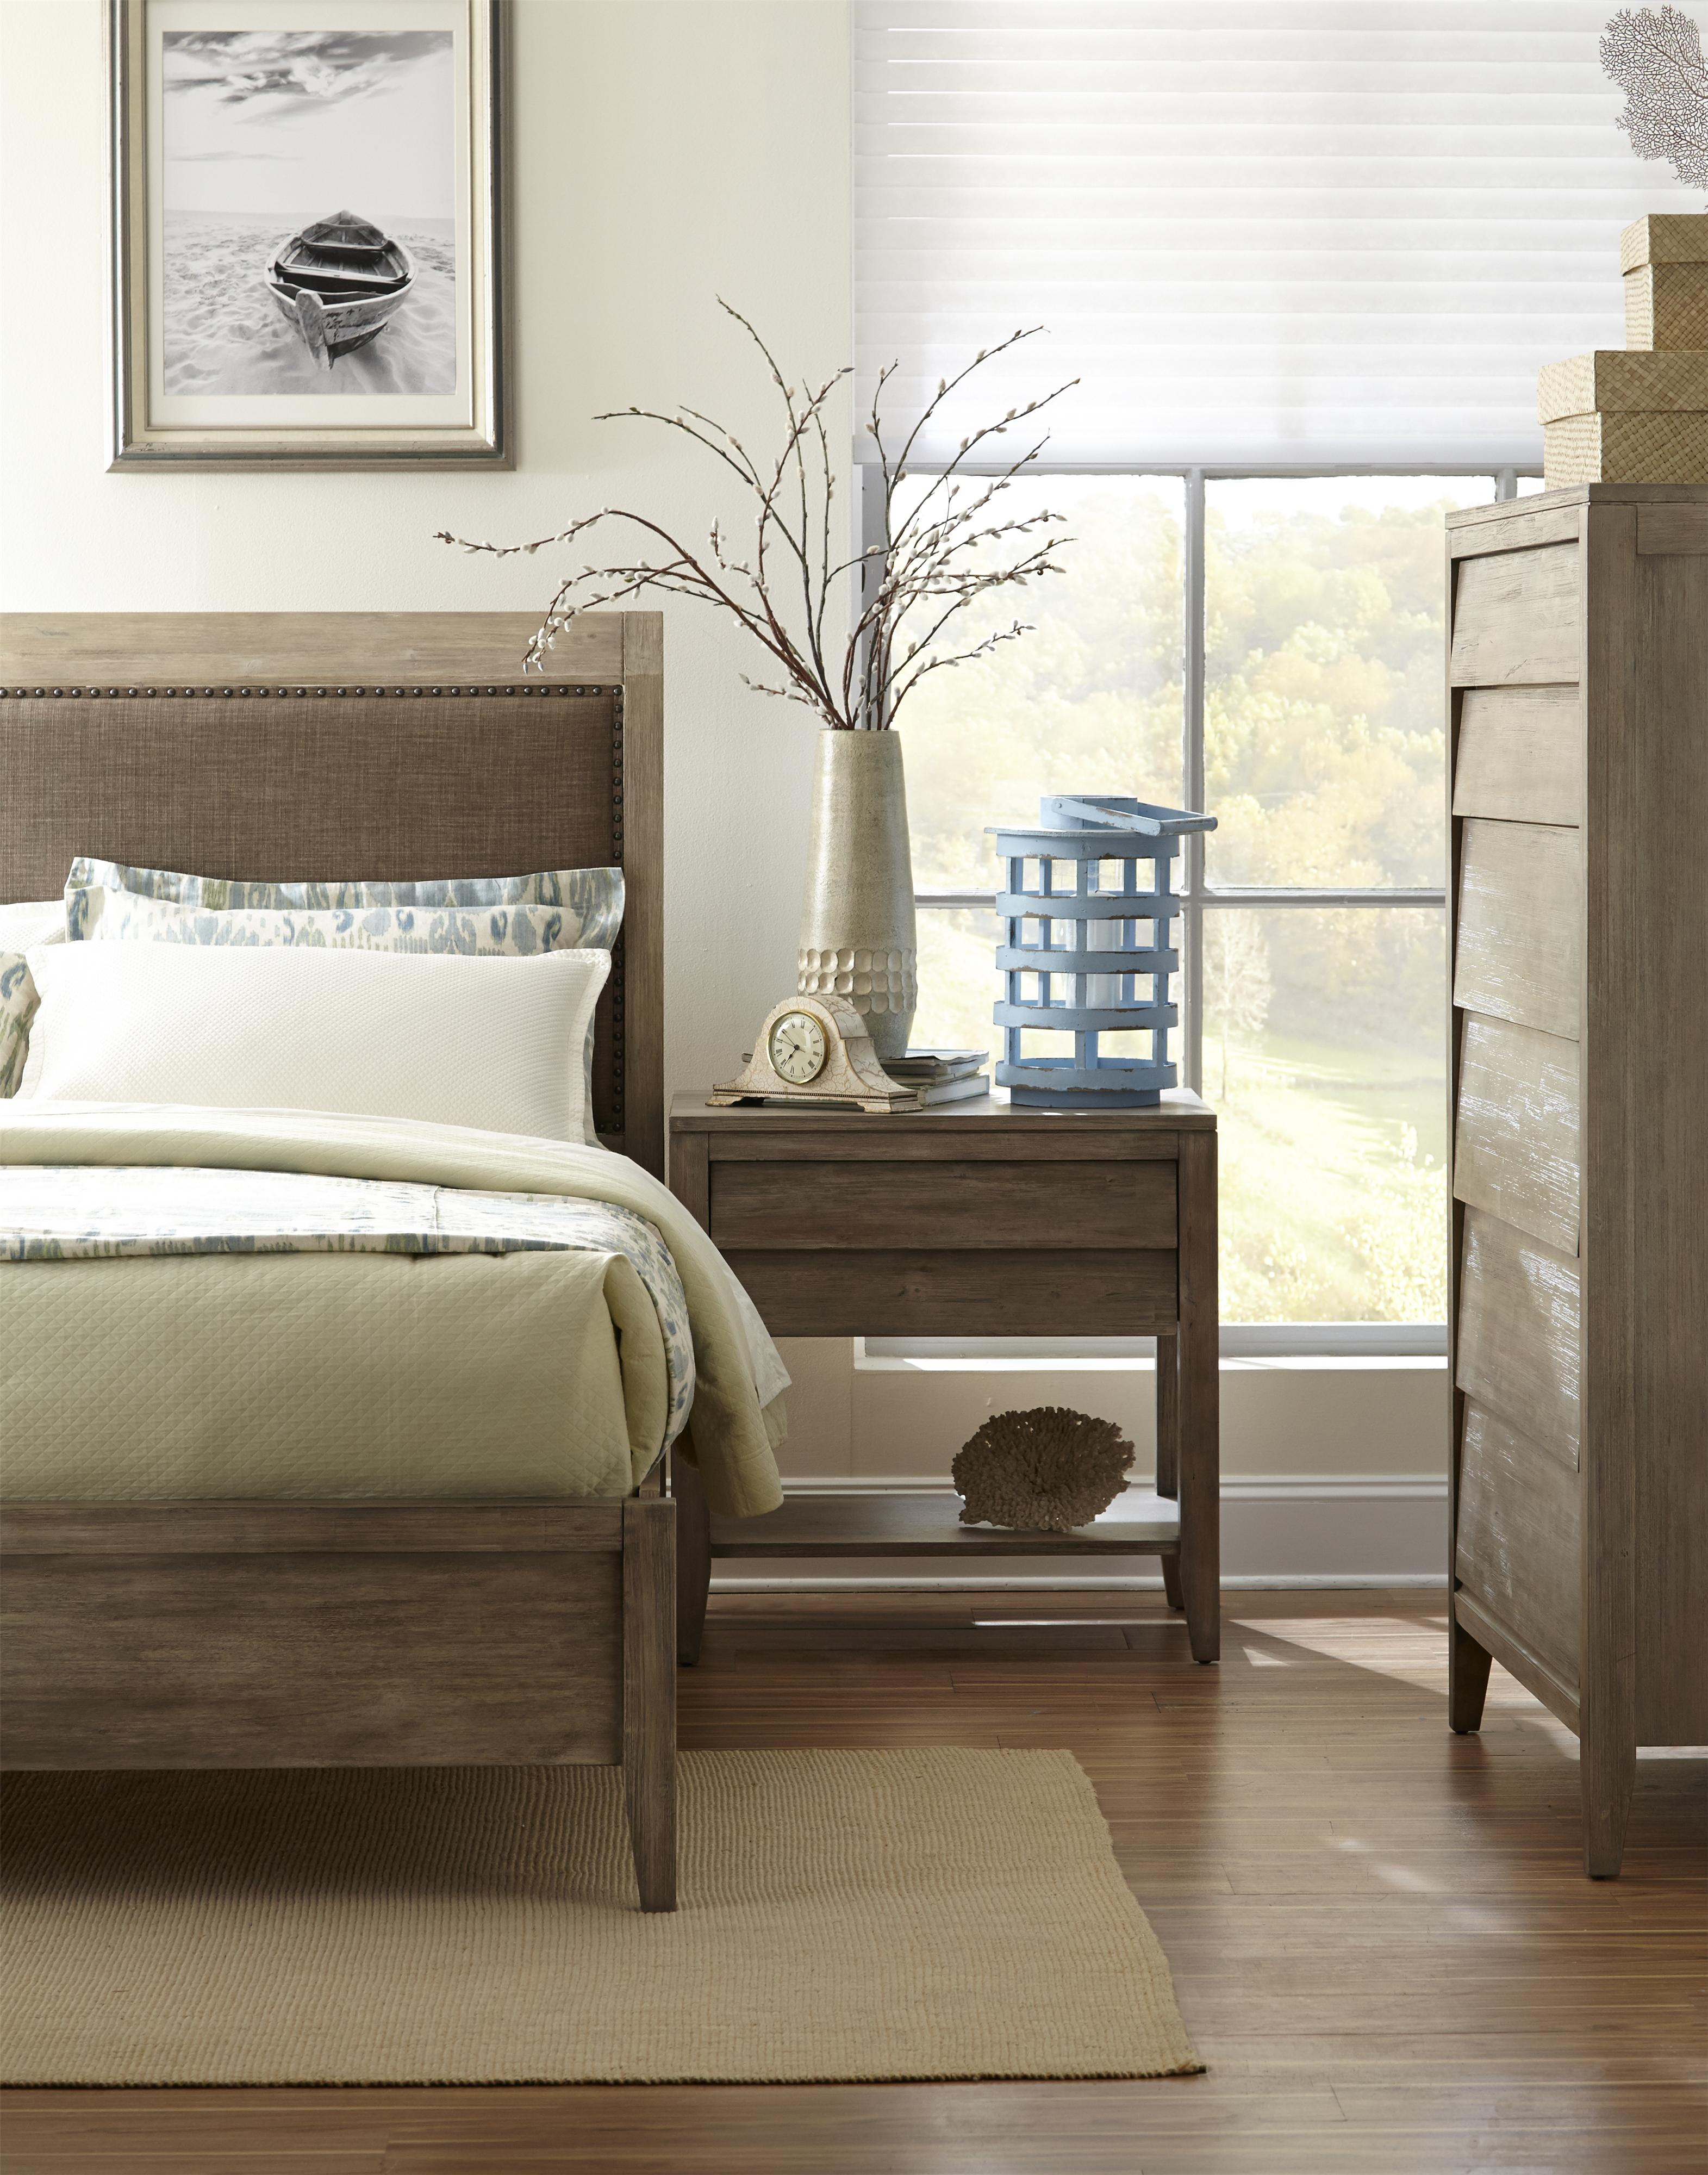 Cresent Fine Furniture Corliss Landing King Bedroom Group - Item Number: 5600 K Bedroom Group 2